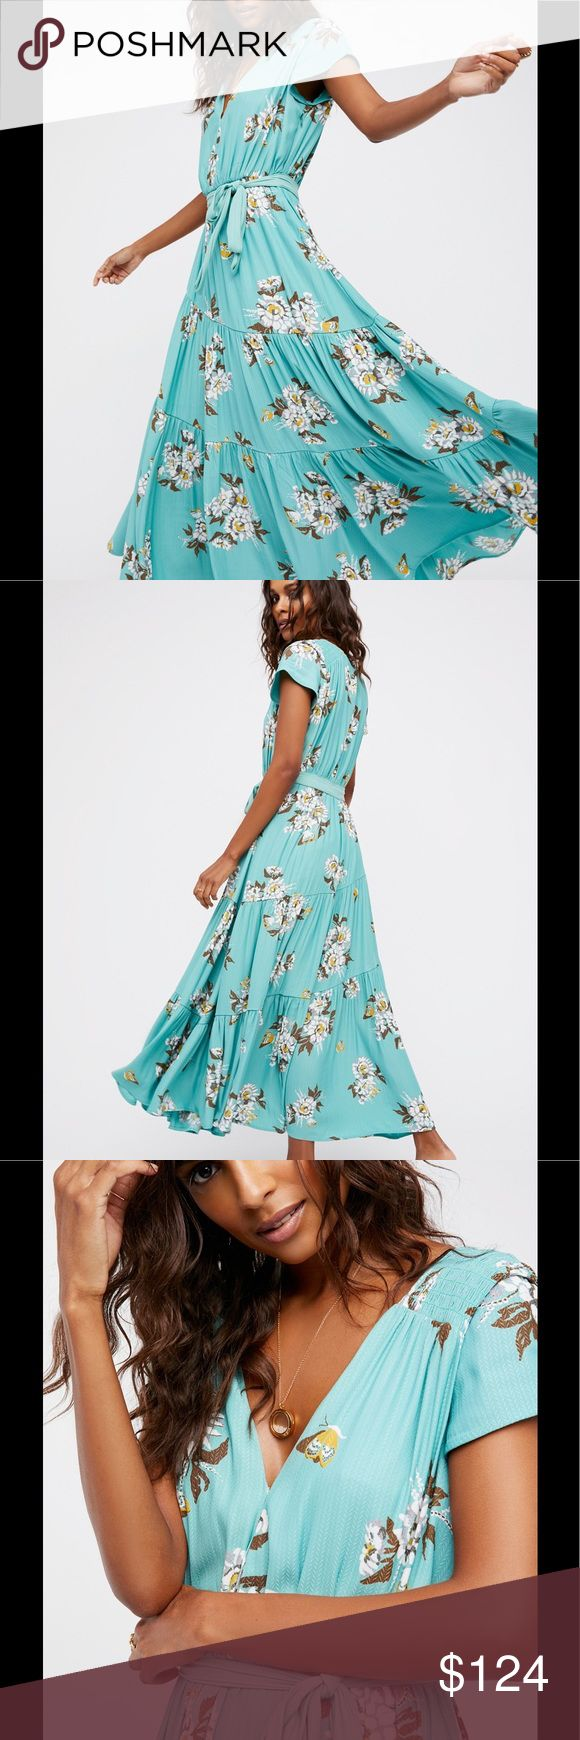 Free people All I Got Maxi dress 6 Beautiful long maxi dress Botanical size 6 A crepe Free People maxi dress with a romantic floral print. A self-belt ties at the waist, and tiered ruffles lend a full effect to the skirt. Deep V neckline and cap sleeves. Button back placket. Lined.  Fabric: Crepe. Shell: 100% polyester. Lining: 100% rayon. Wash cold or dry clean. Free People Dresses Maxi